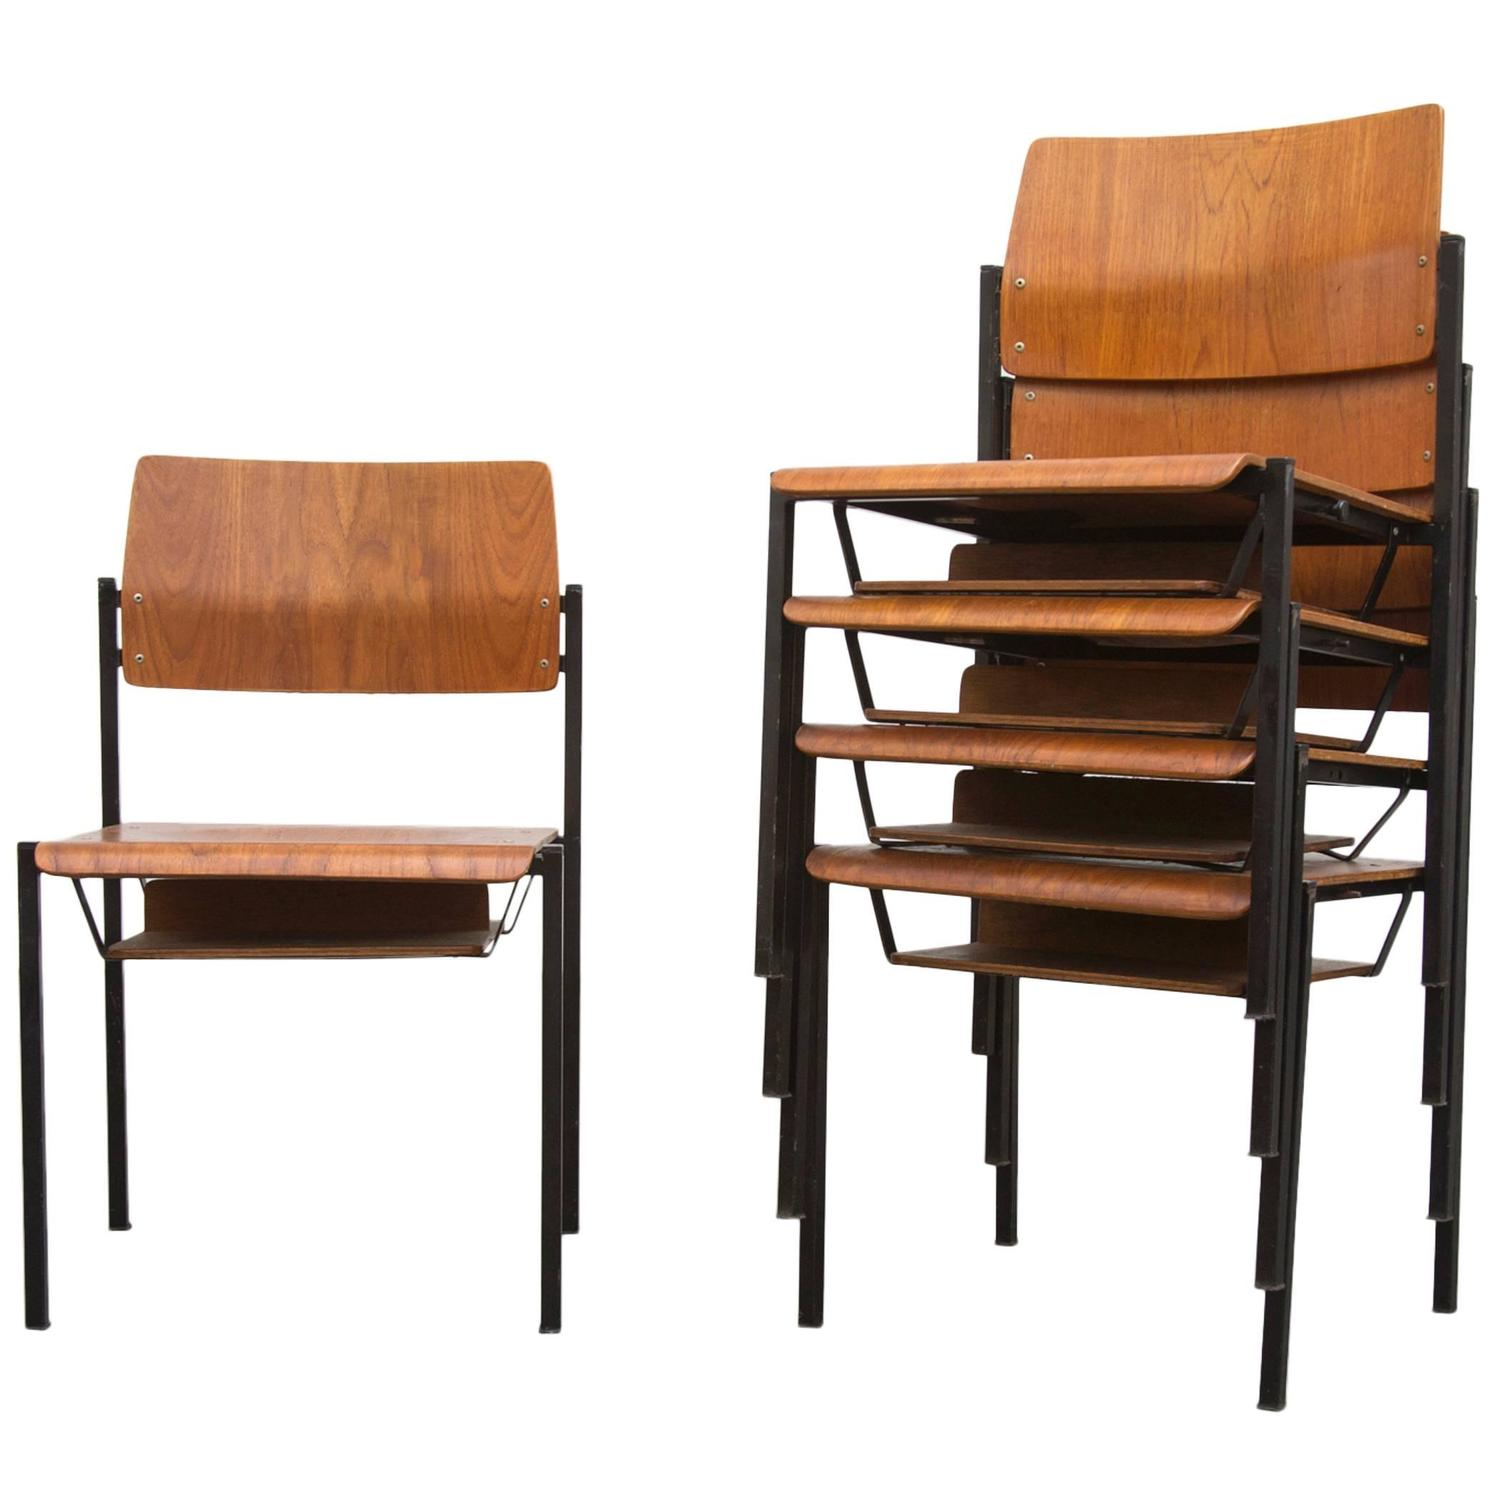 Thonet Stacking Church Chairs with Book Cubby at 1stdibs